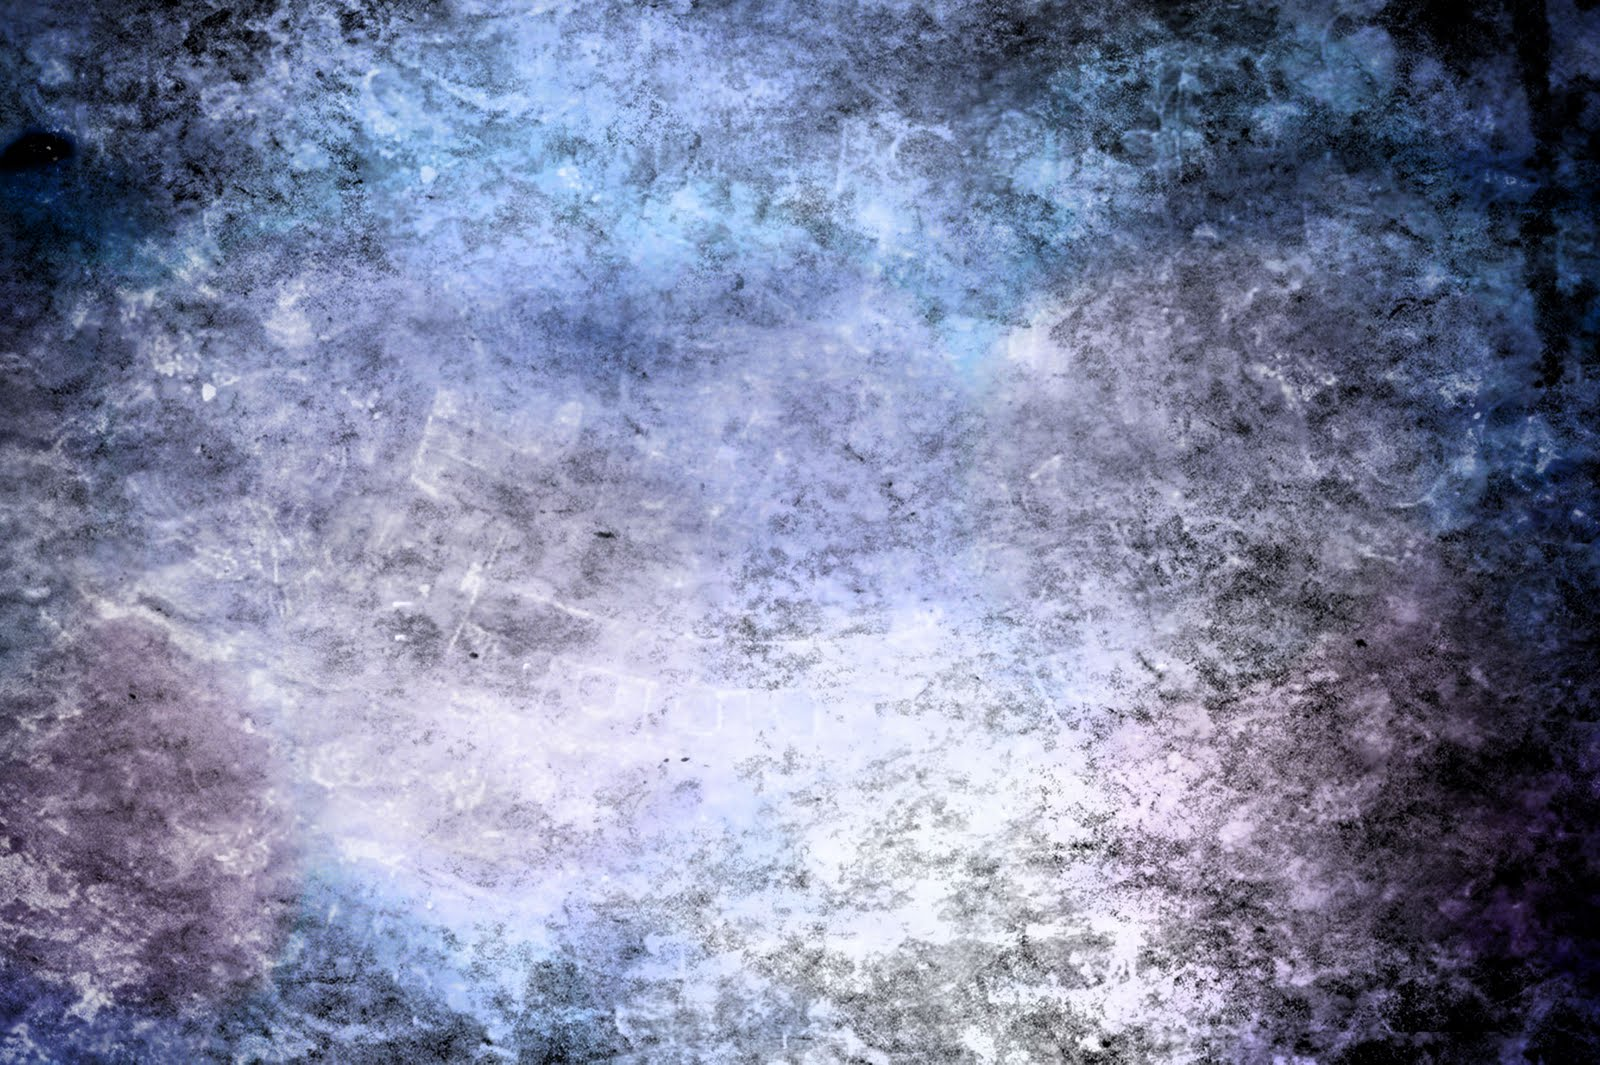 Color Grunge Texture Five   ibjennyjenny photography and free resources